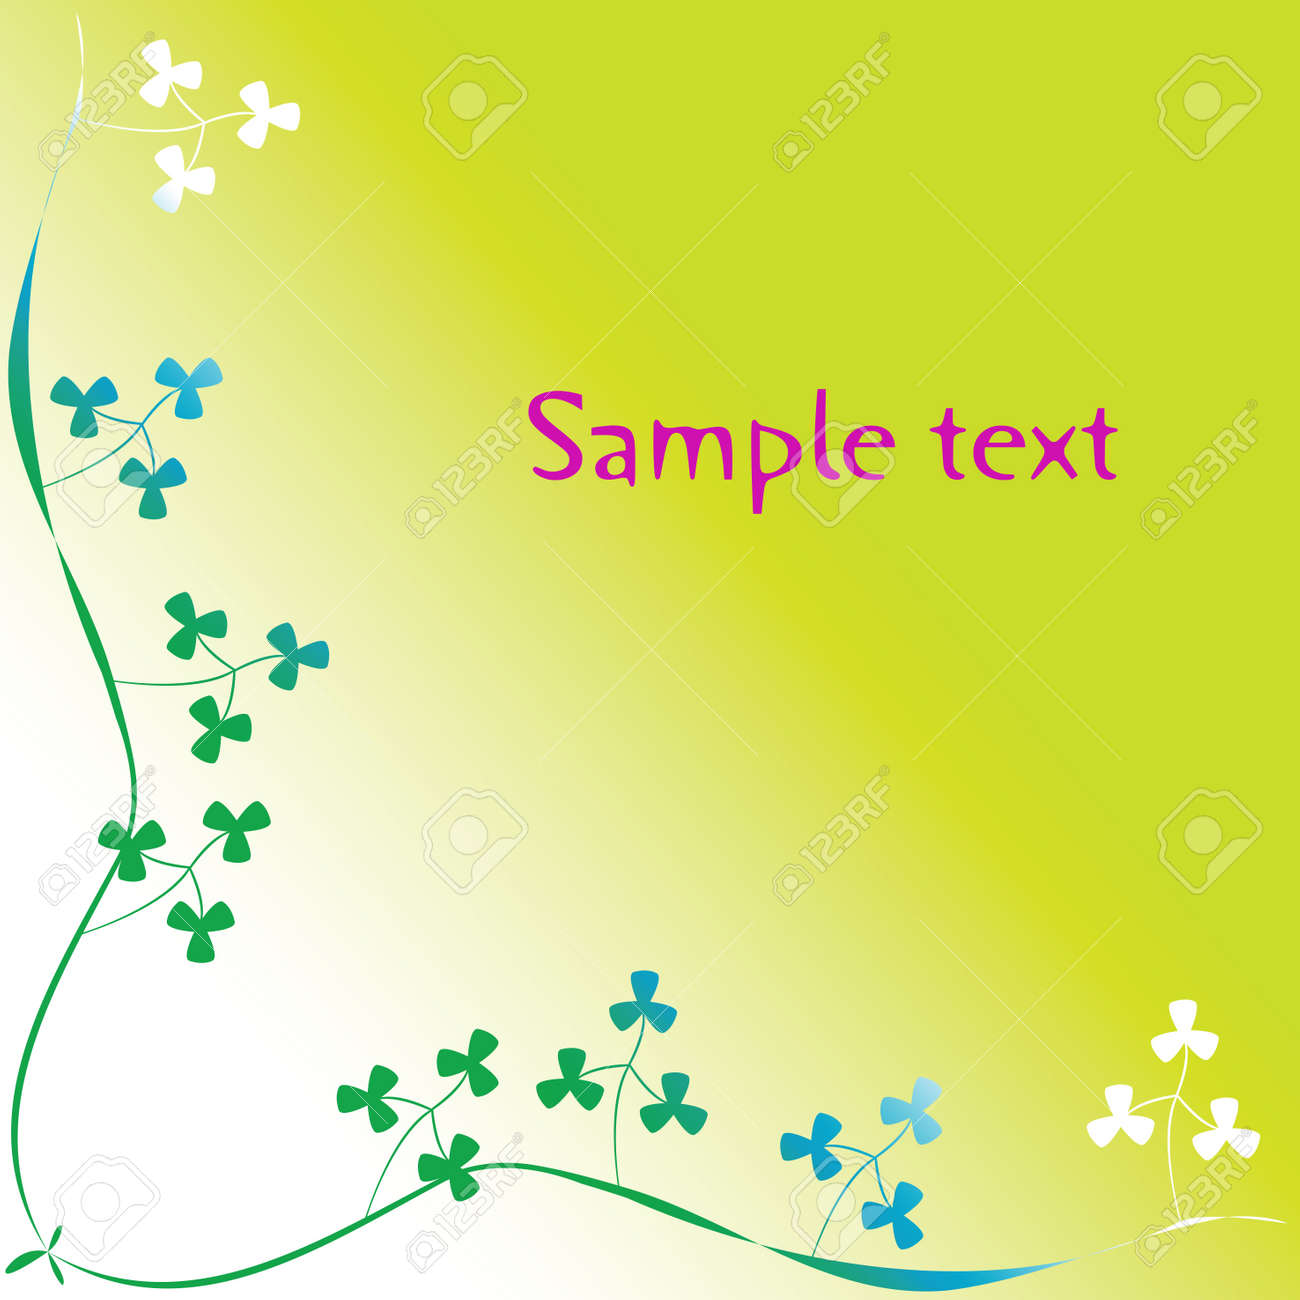 clover foliage with space for text, art illustration Stock Photo - 7323698